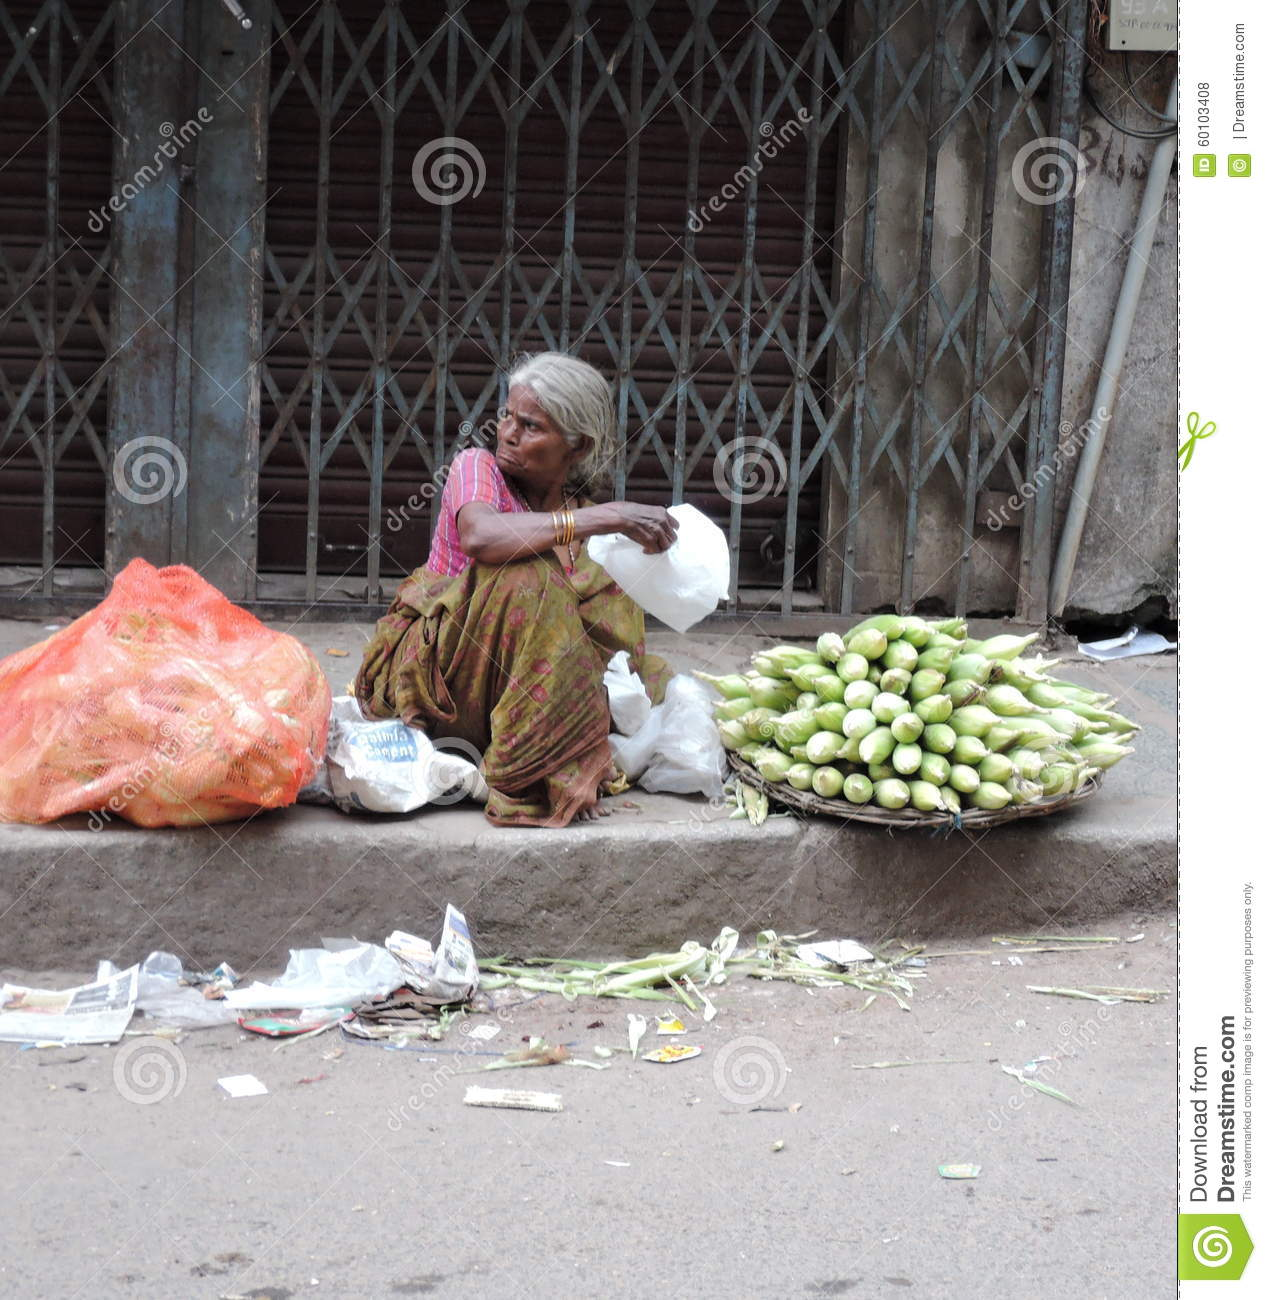 Image of: Disabled Bangalore India September 27 2015 This Photo Of Poor Old Woman Selling Corn Depicts Poor Economic And Inhuman Working Conditions Of People Living In Dreamstimecom Poor Old Woman Selling Corn In The Streets Editorial Stock Photo